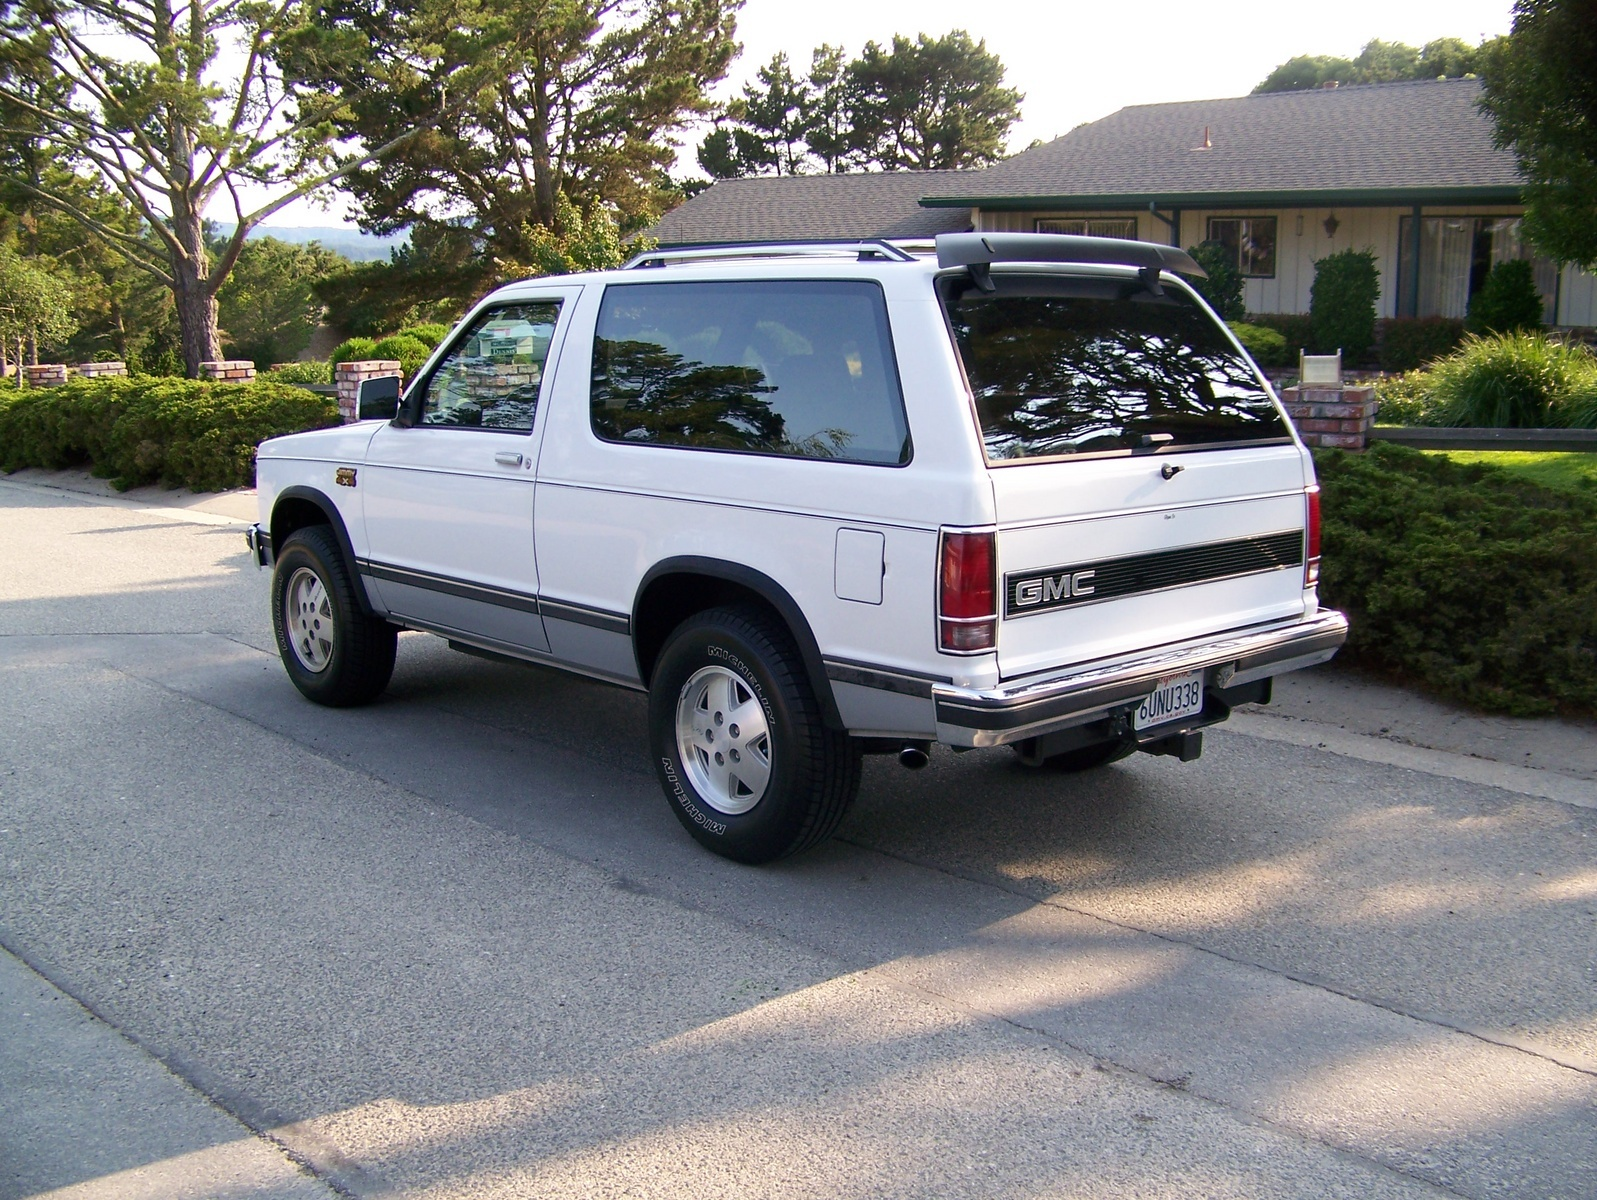 1986 Gmc Jimmy Overview Cargurus